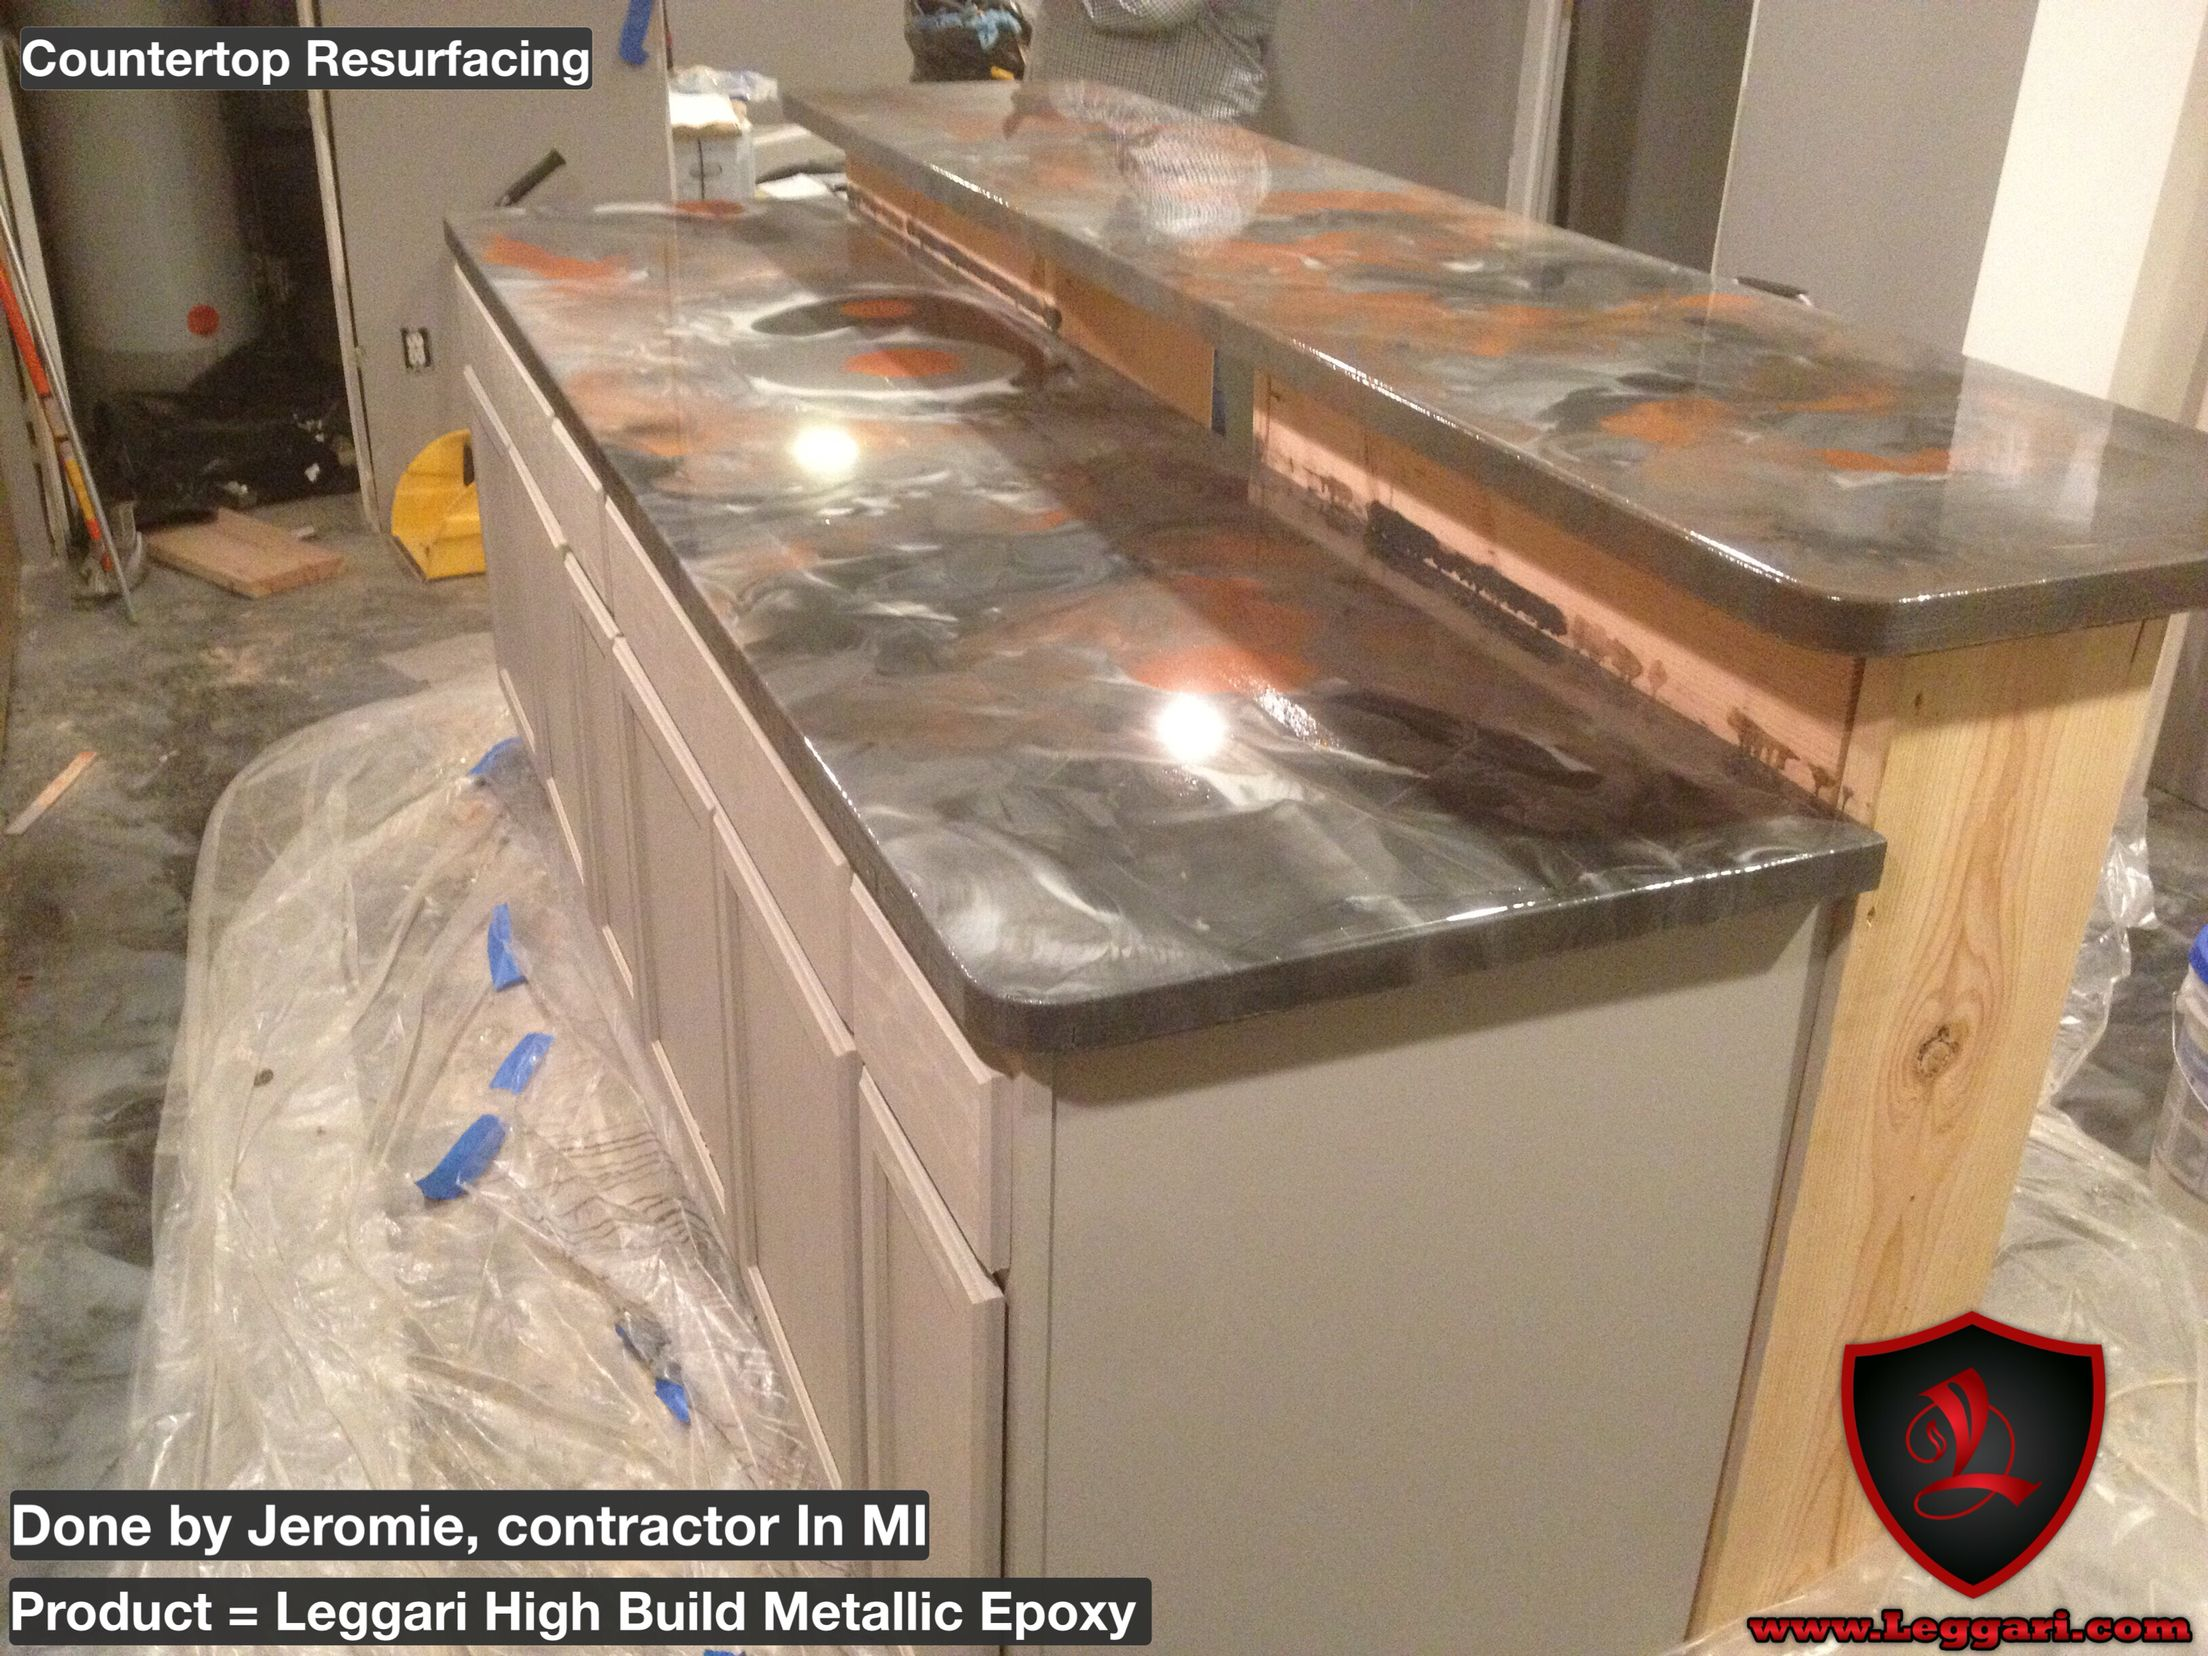 Leggari DIY metallic epoxy countertop resurfacing kits Another ...